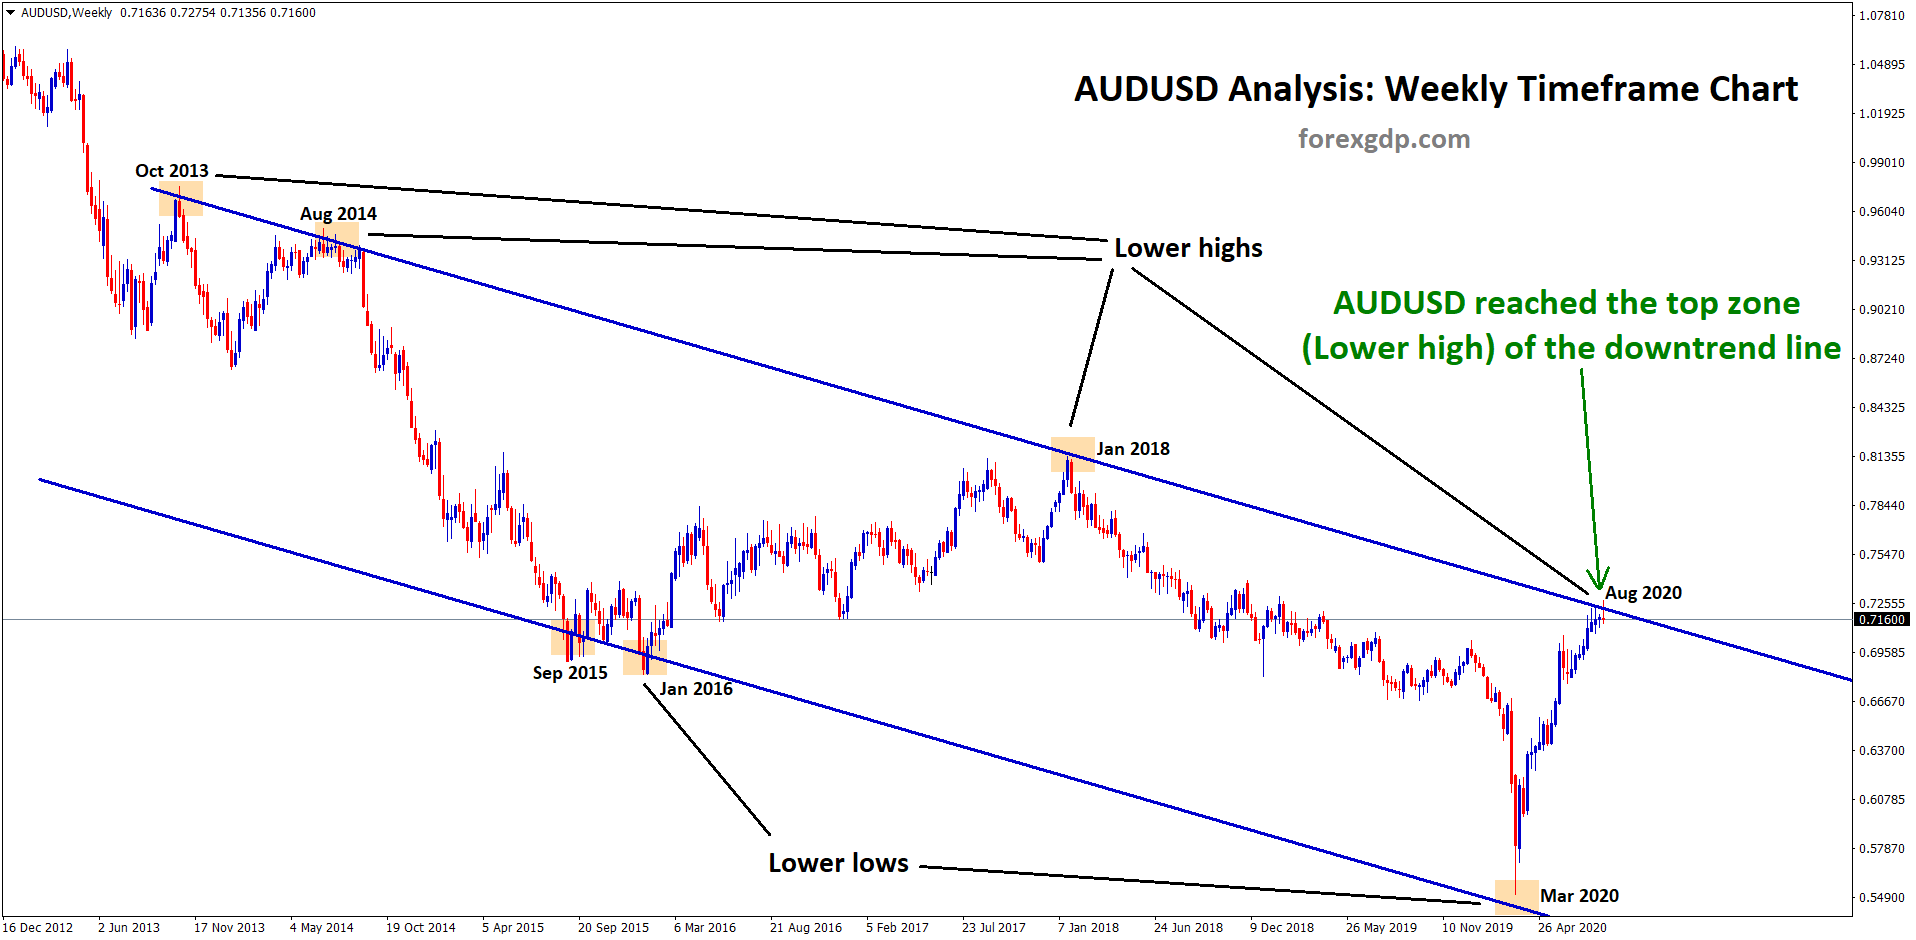 AUDUSD reached the top zone of the downtrend line